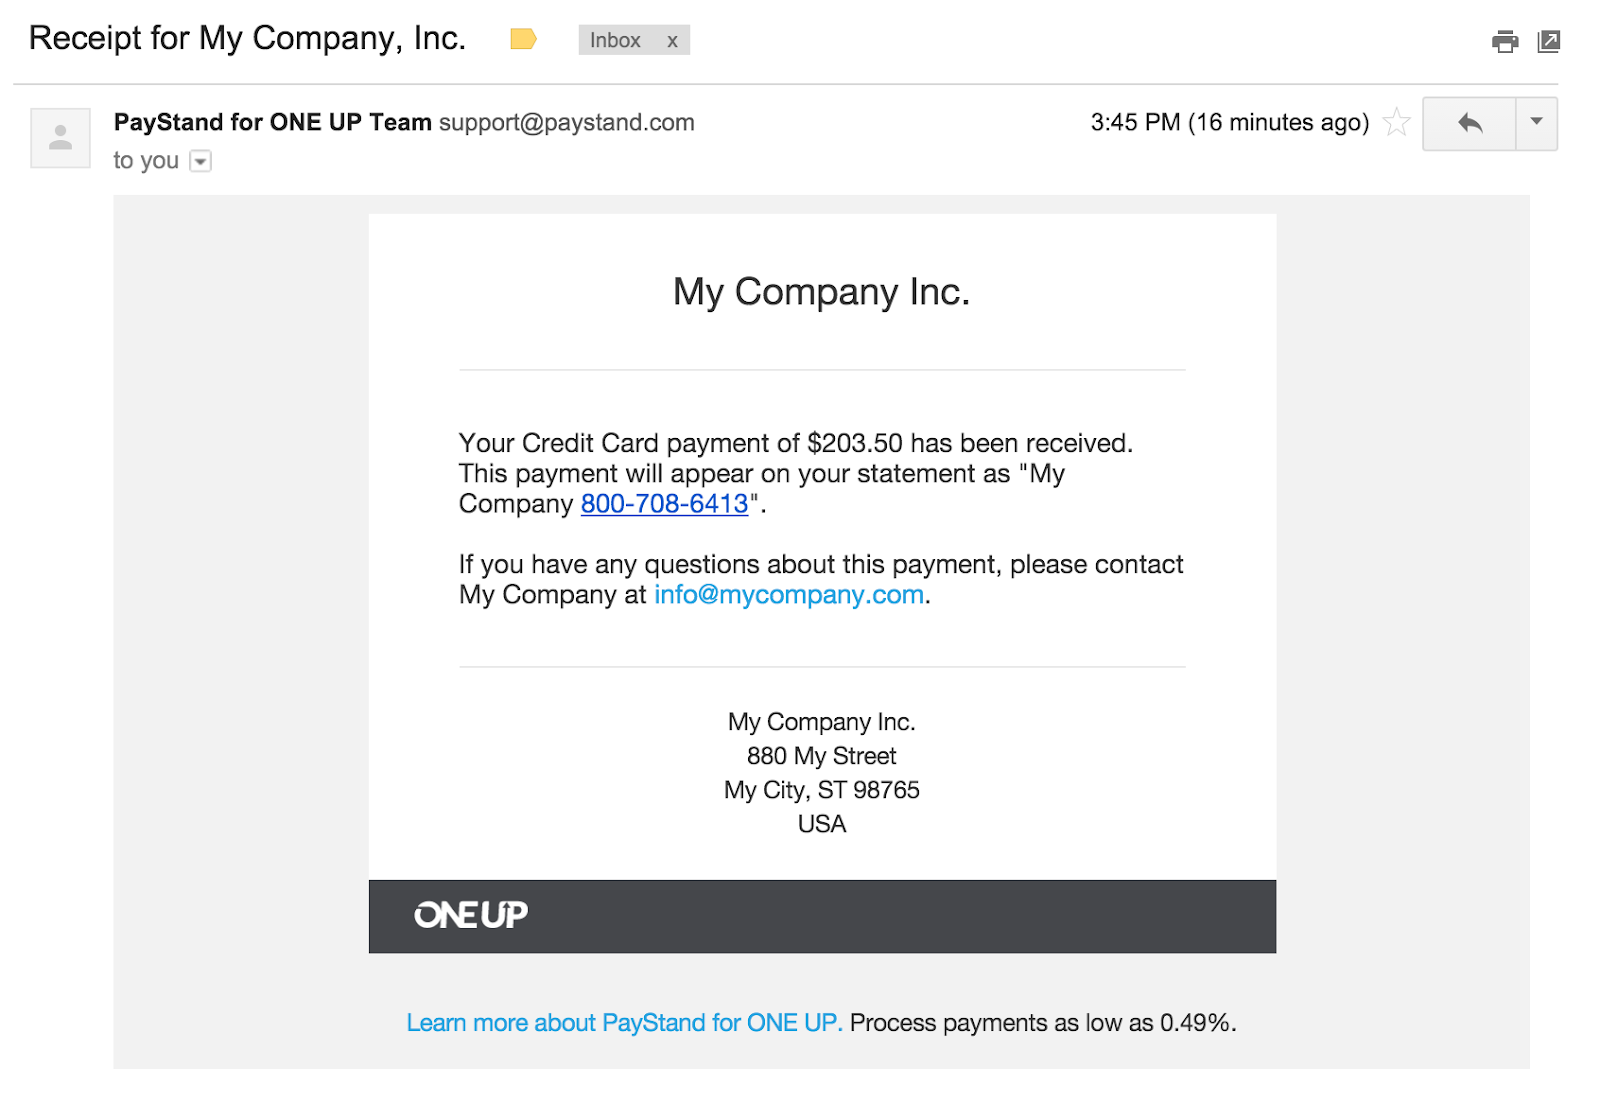 OneUp Payments by PayStand ONE UP Knowledge Center – A Receipt of Payment